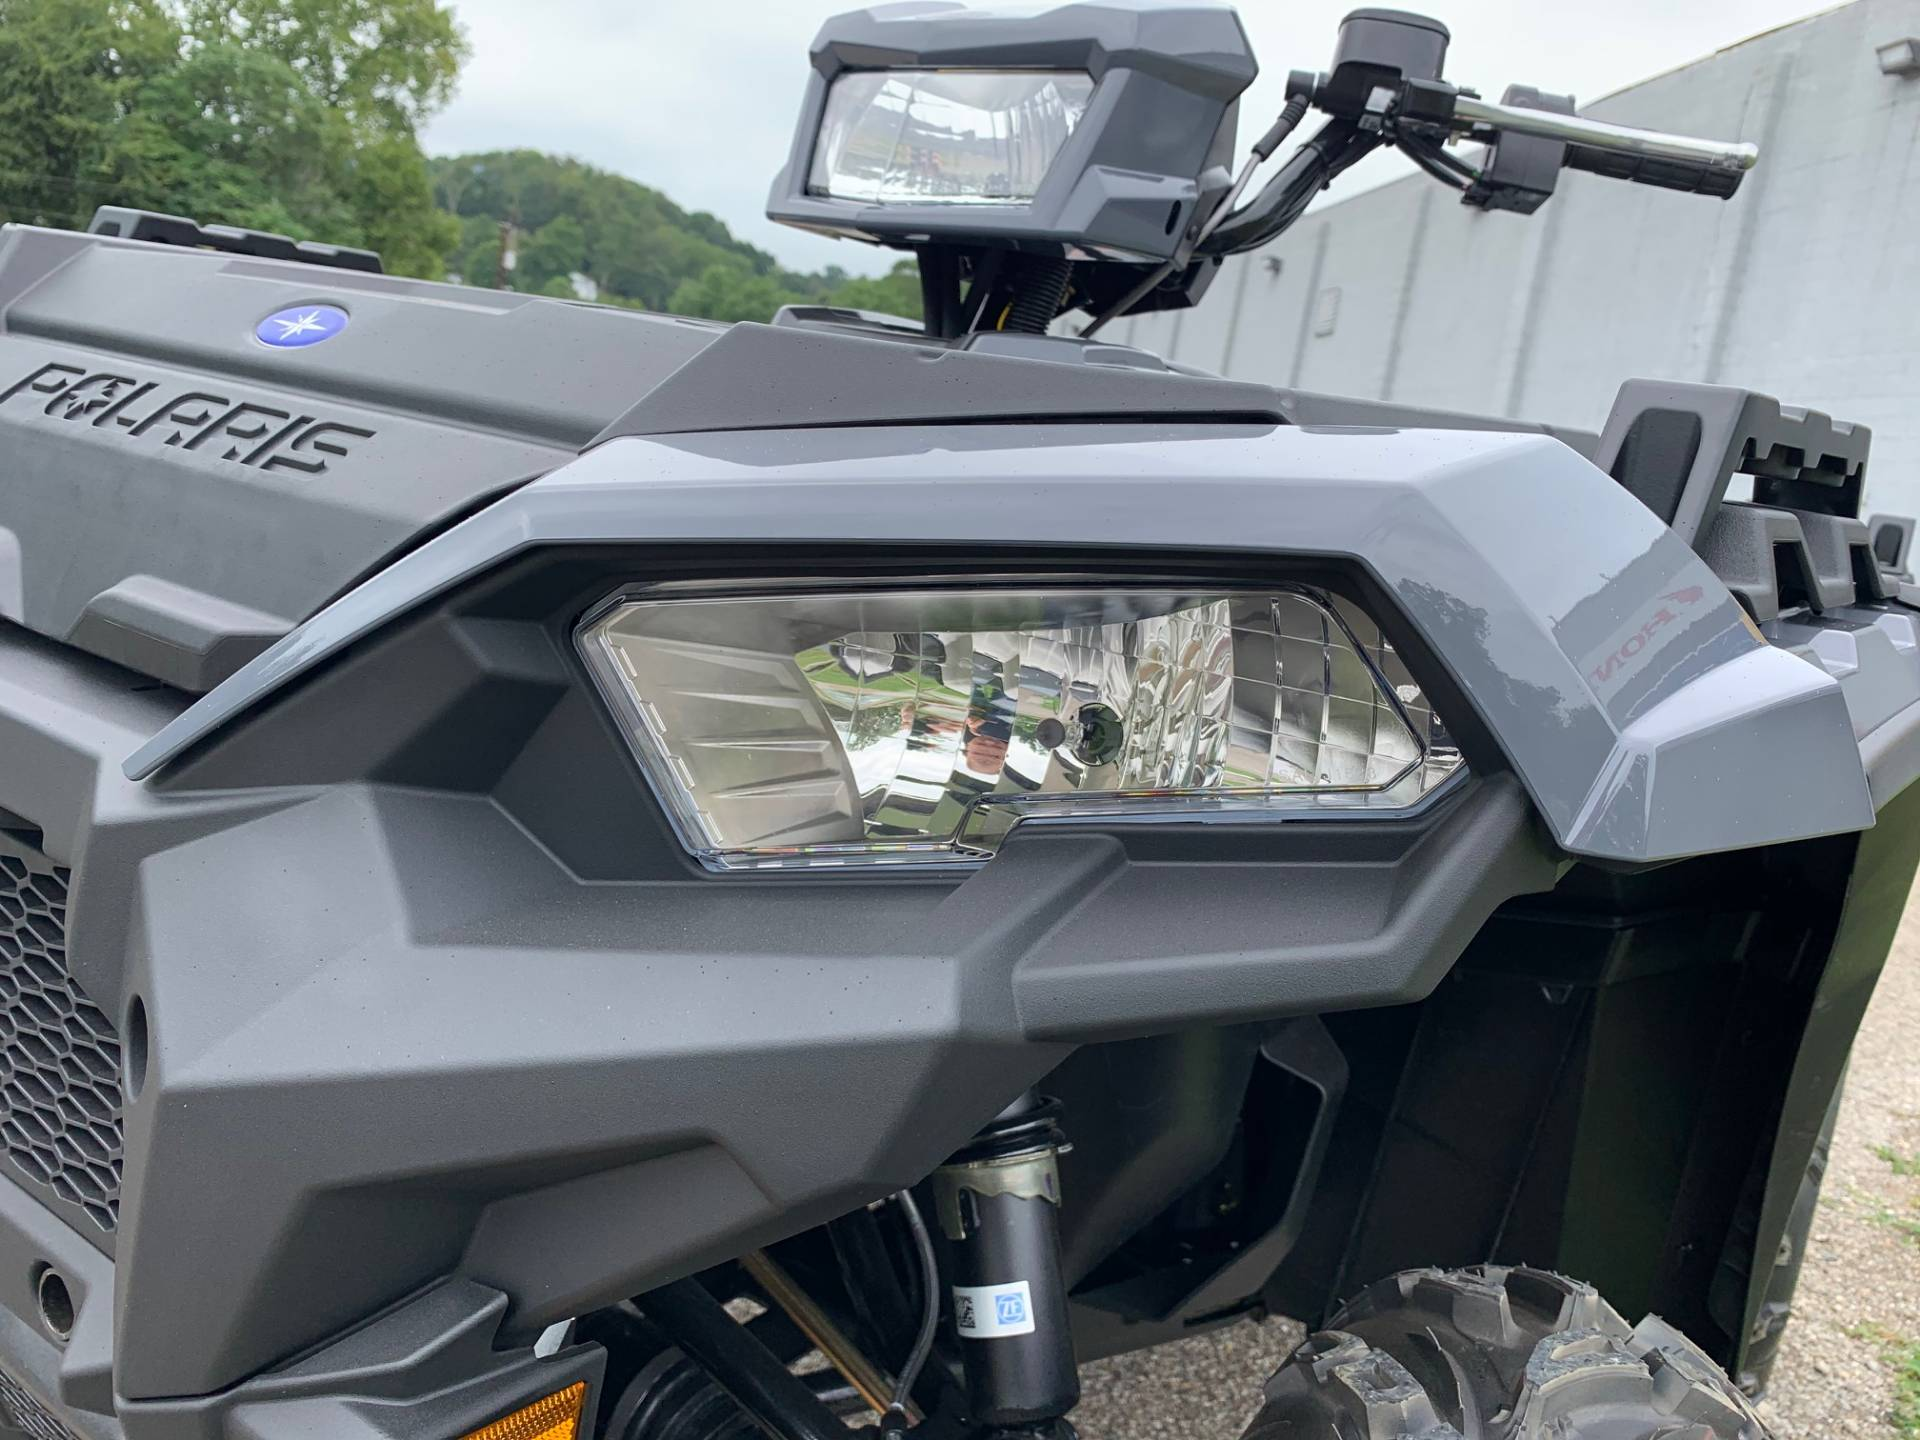 2020 Polaris Sportsman XP 1000 in Brilliant, Ohio - Photo 9